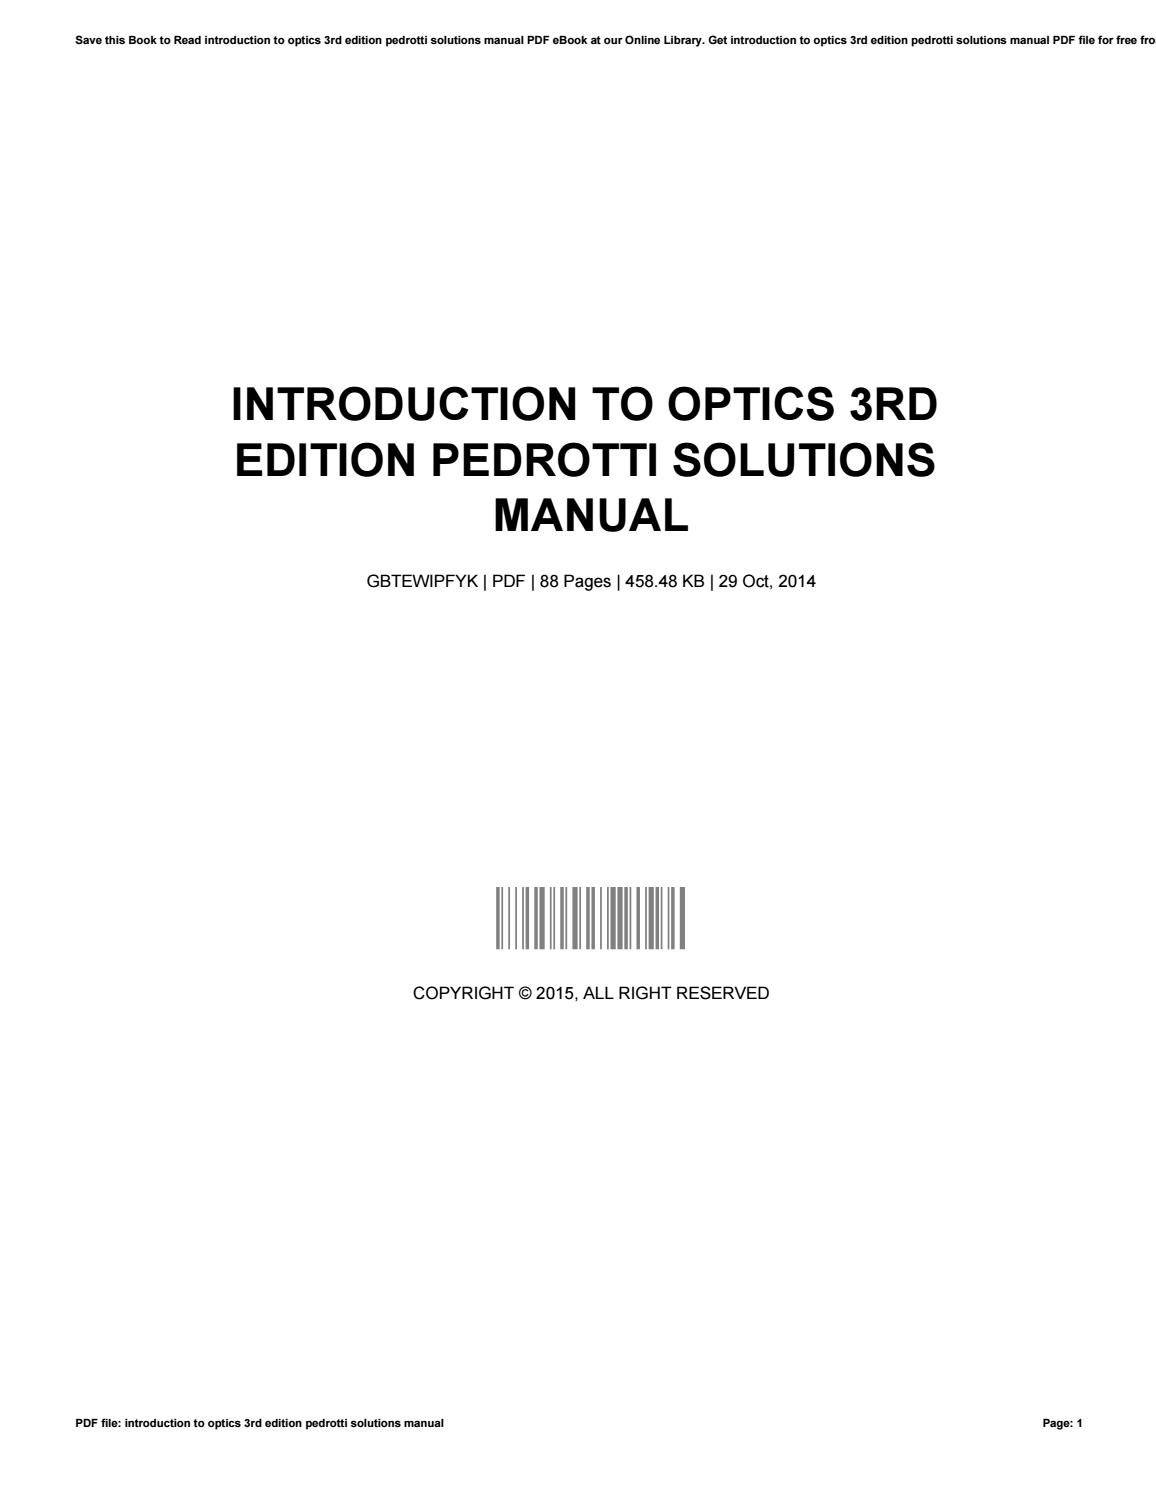 introduction to optics 3rd edition pedrotti solutions manual pdf